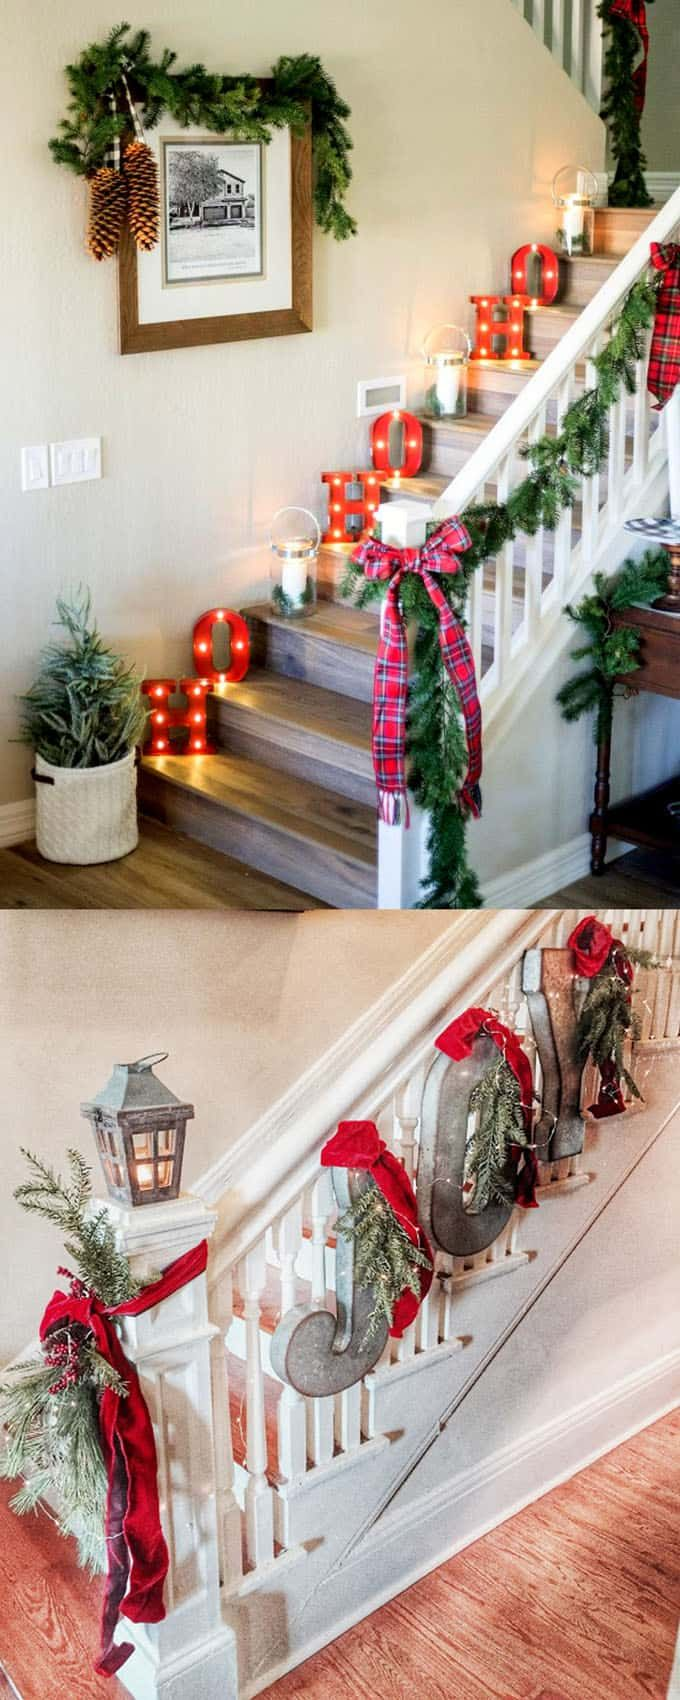 100+ Favorite Christmas Decorating Ideas For Every Room in Your Home : Part 1